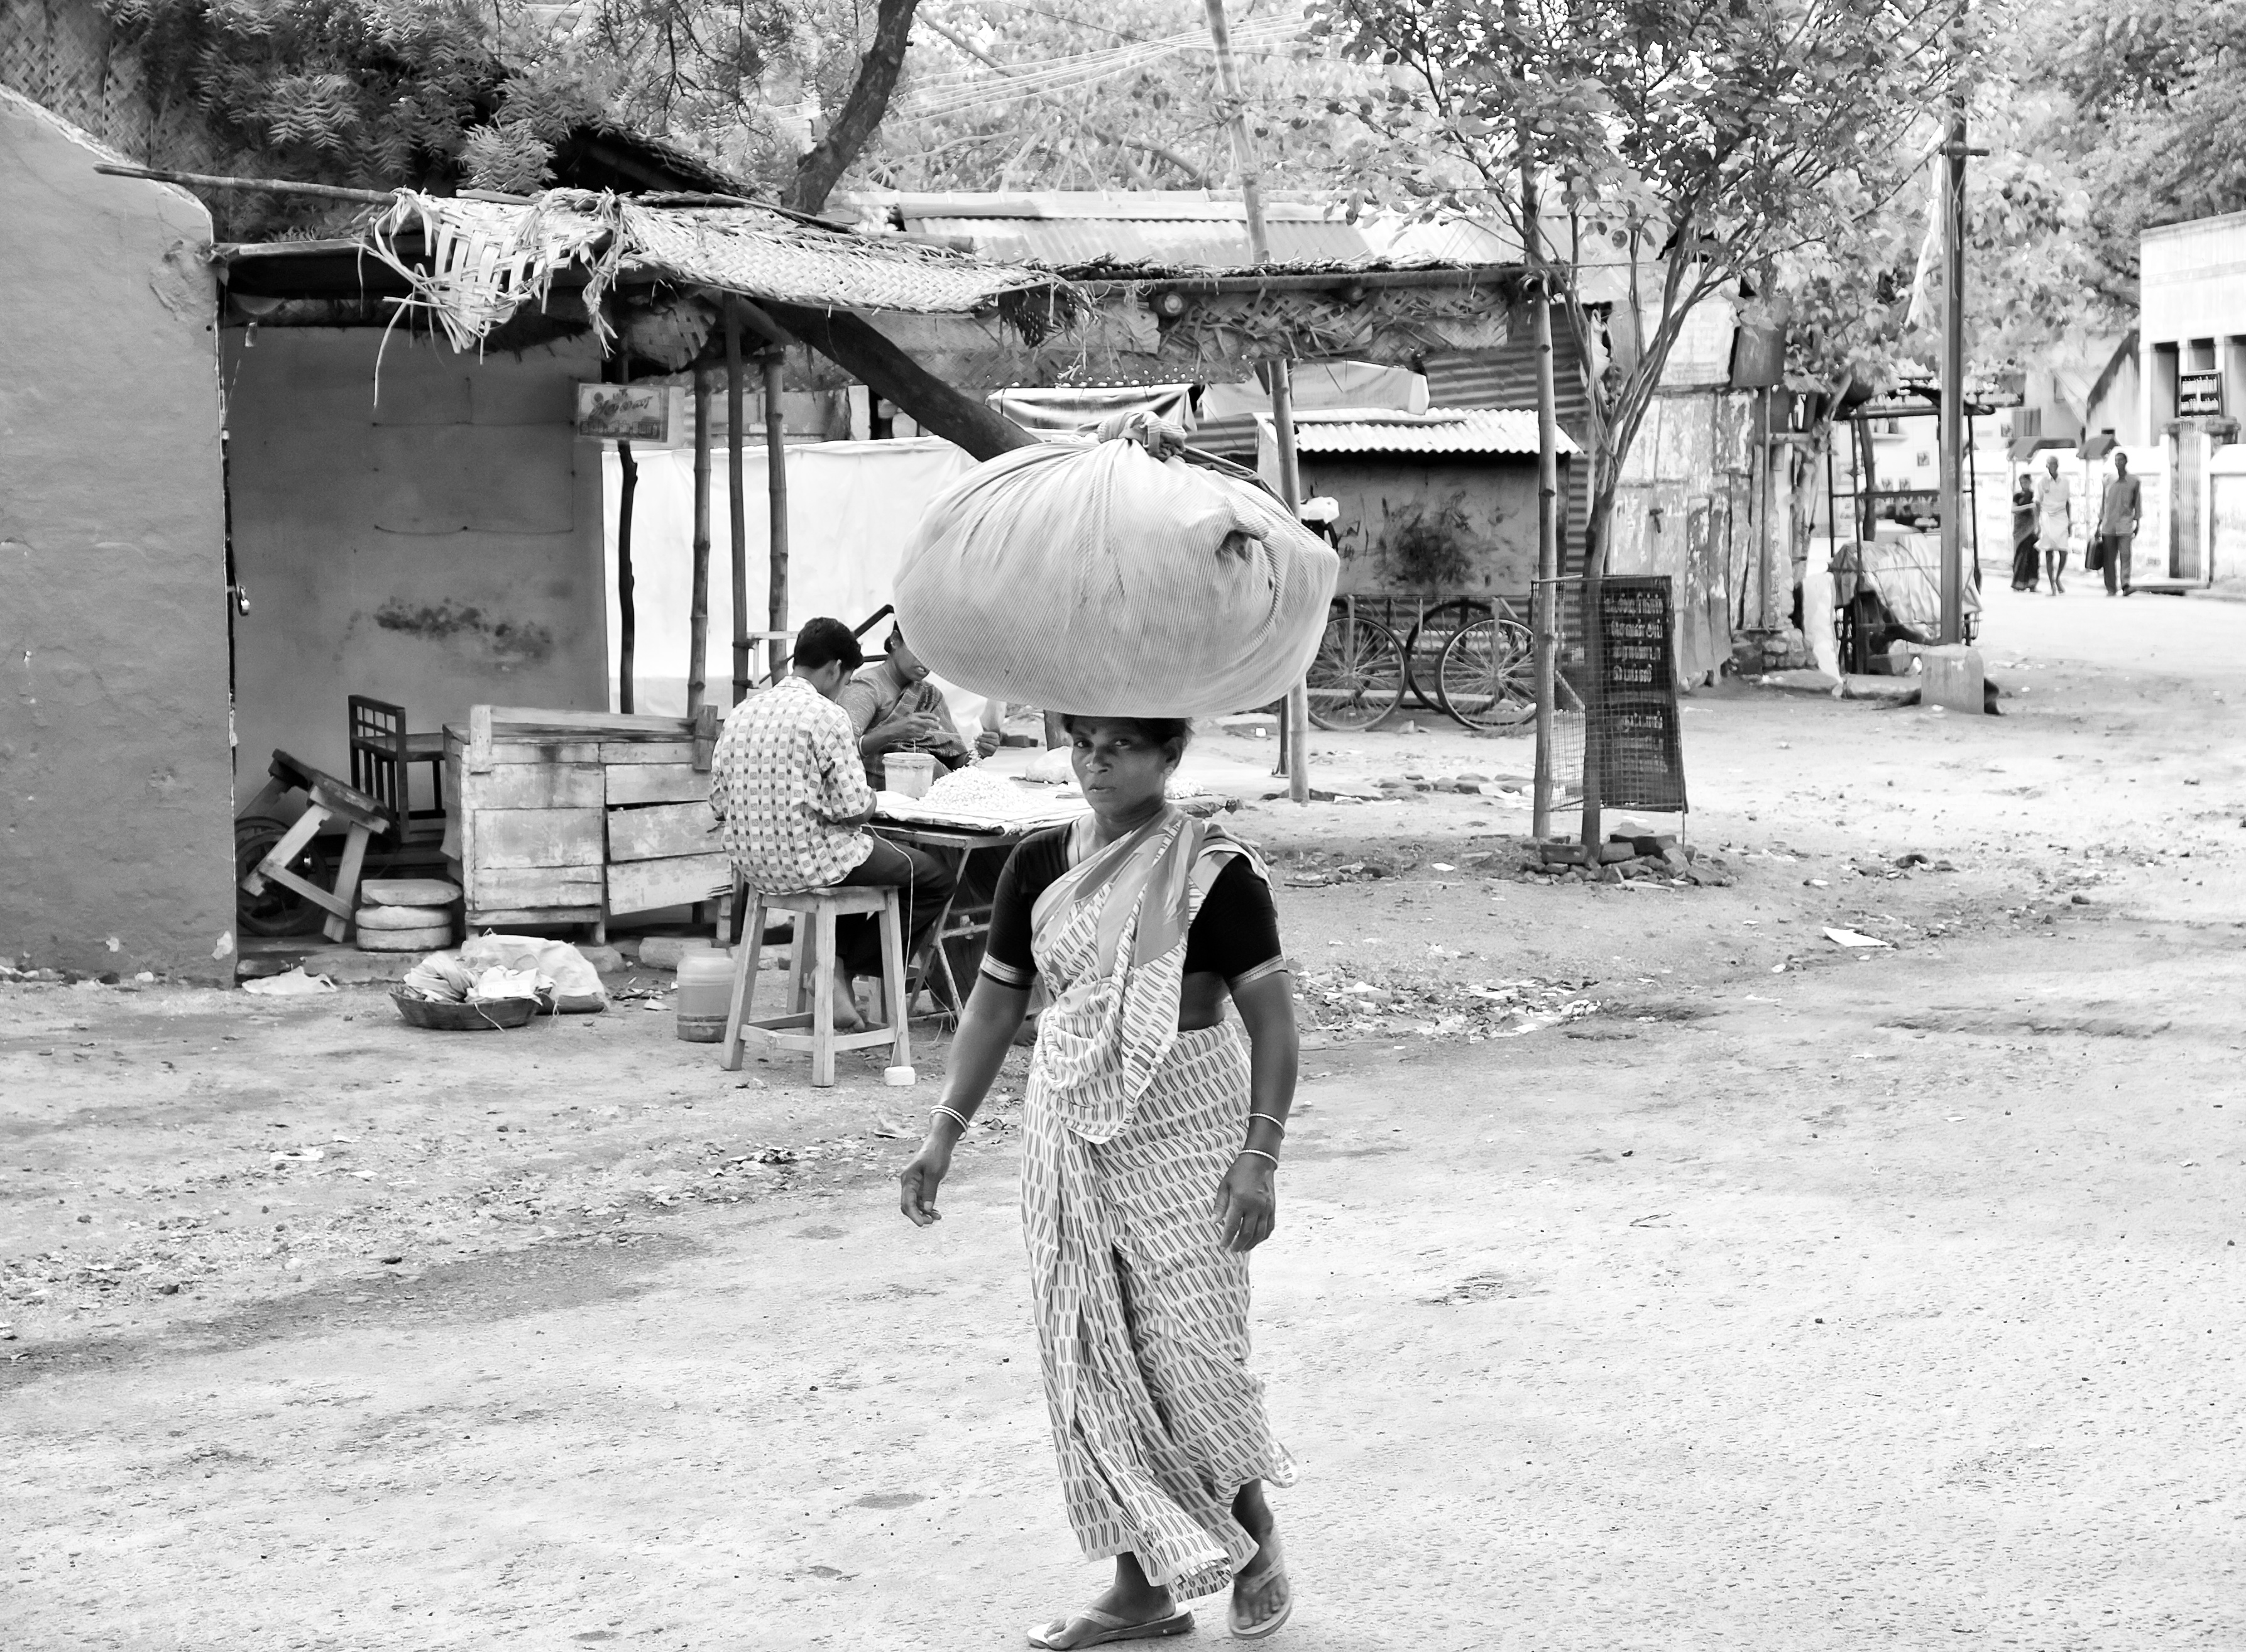 A washerwoman carrying a bundle of laundry to deliver to her customers' homes. Virudhunagar, India